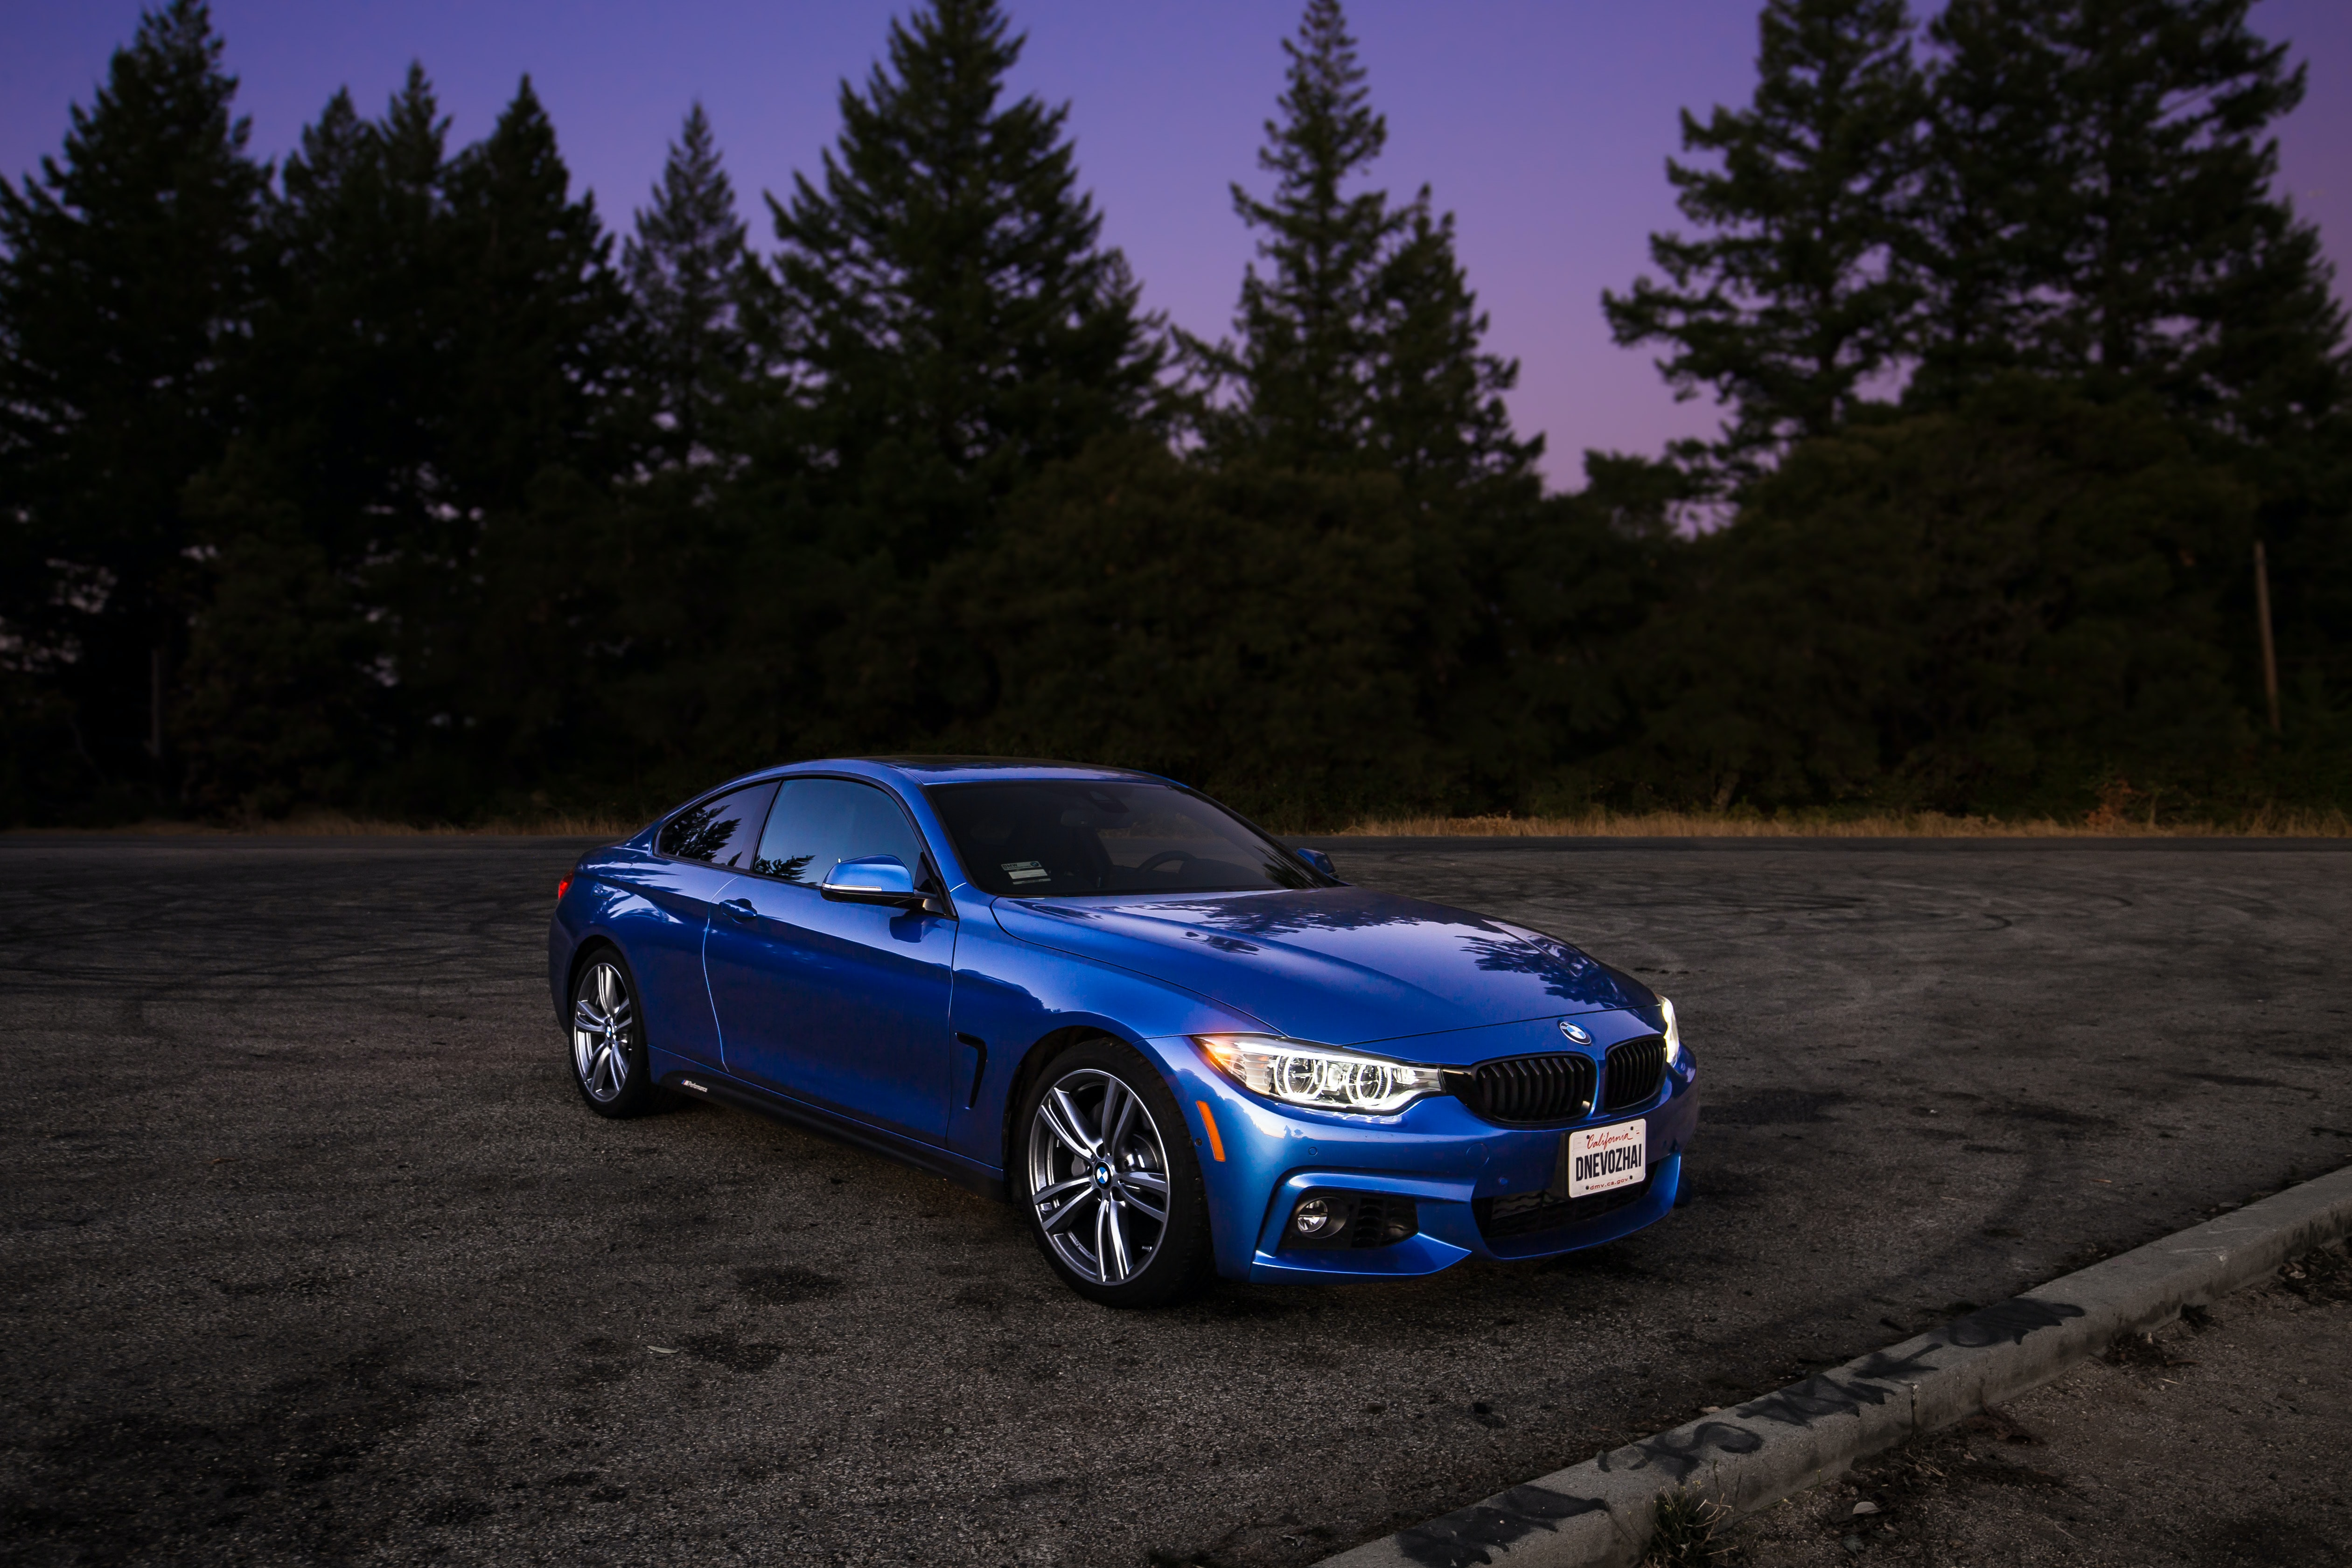 blue BMW coupe on brown asphalt road